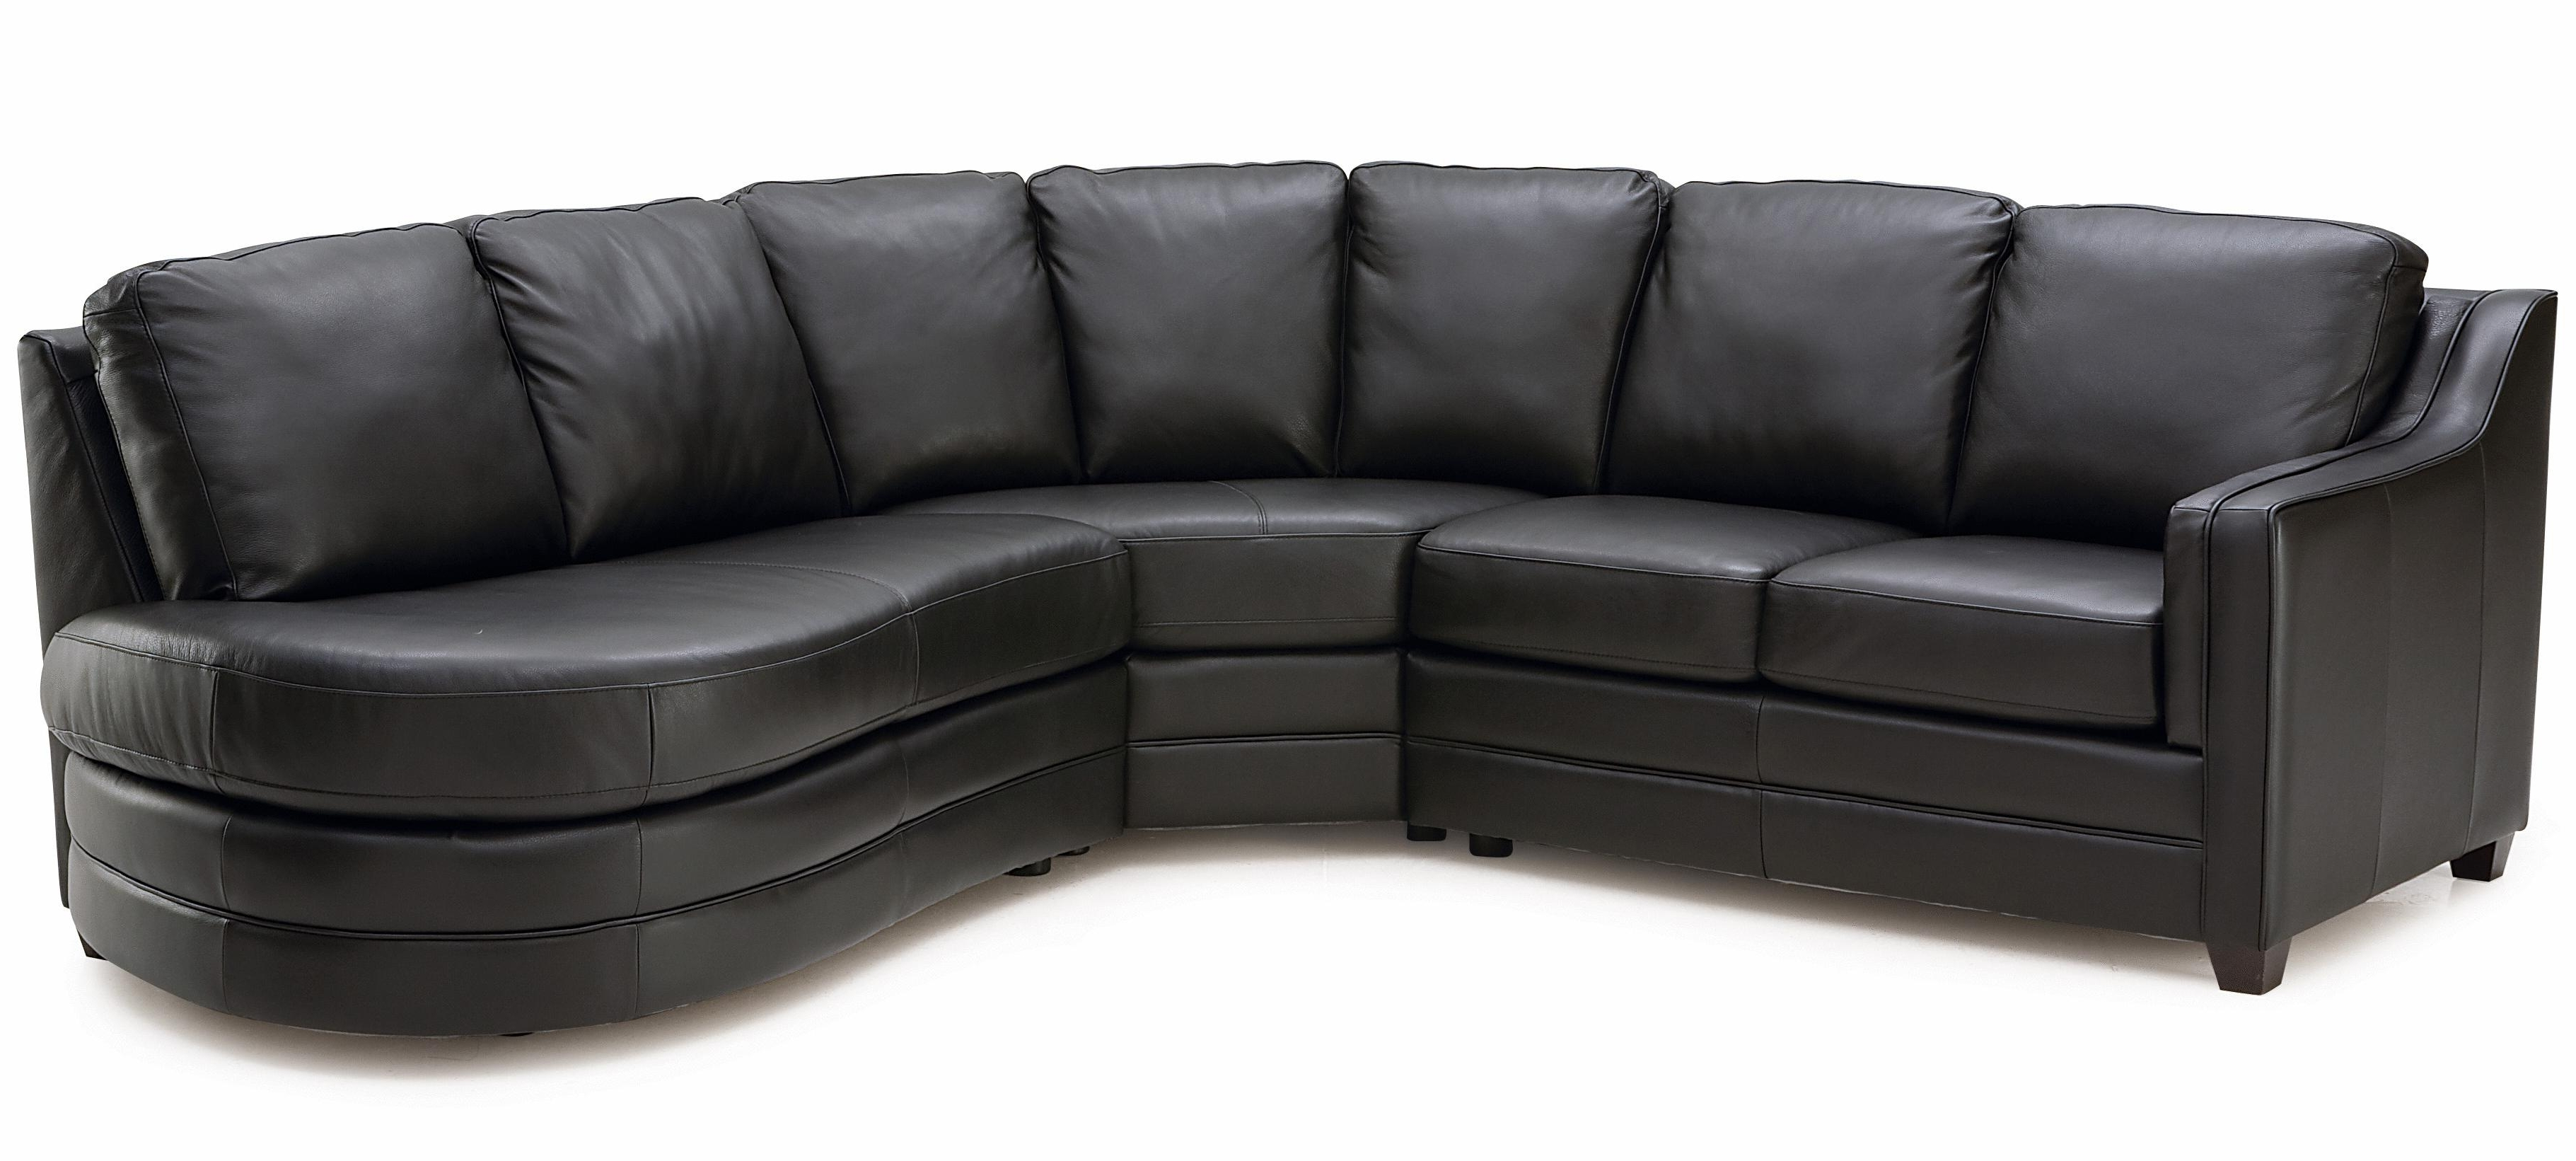 Palliser Corissa Contemporary Sectional Sofa – Ahfa – Sofa With Regard To Well Liked Panama City Fl Sectional Sofas (View 13 of 20)